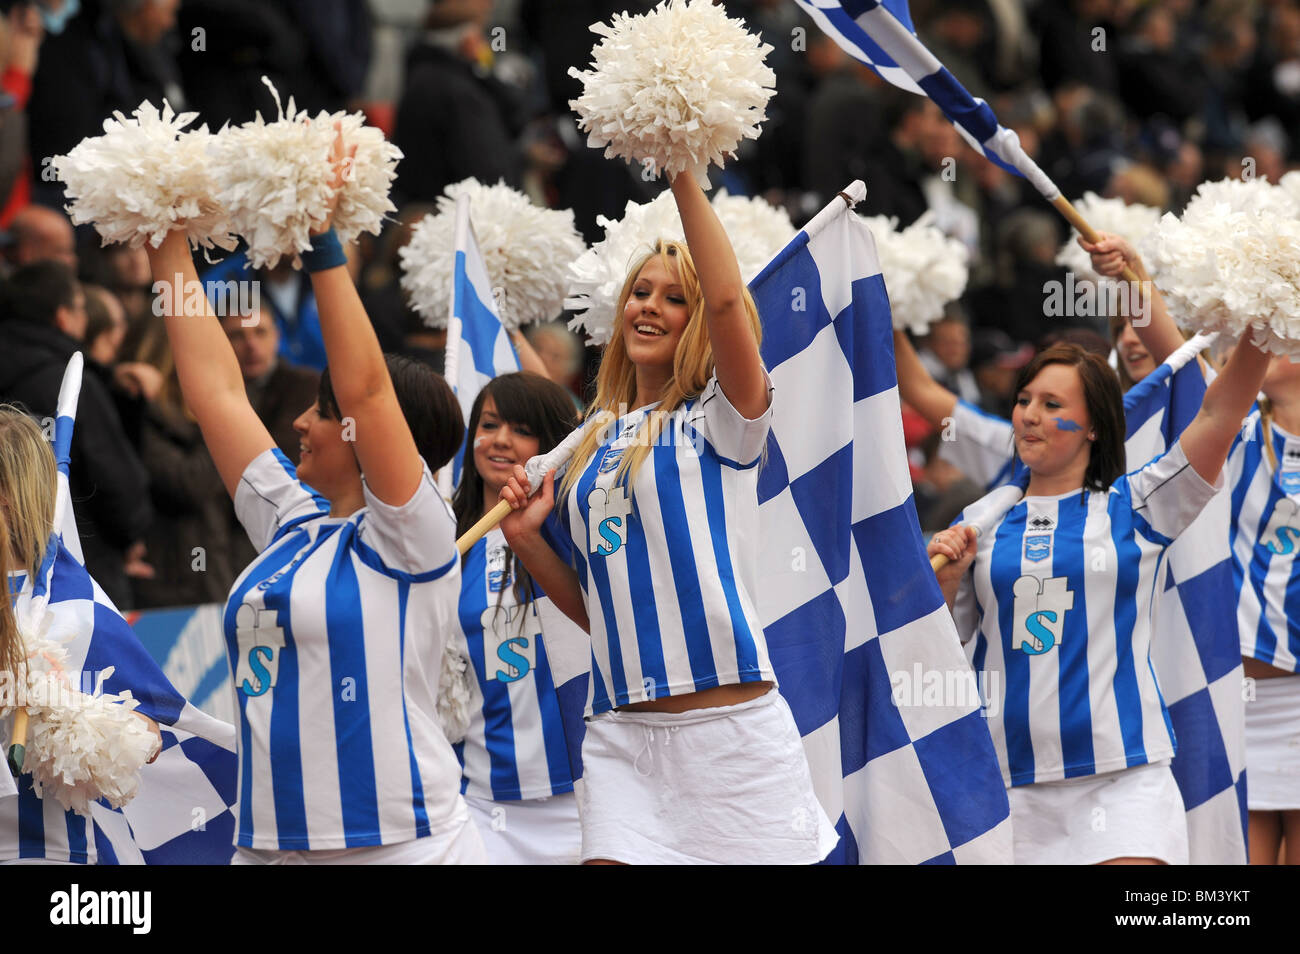 Brighton football club cheerleaders knowns as Gullys Girls - Stock Image